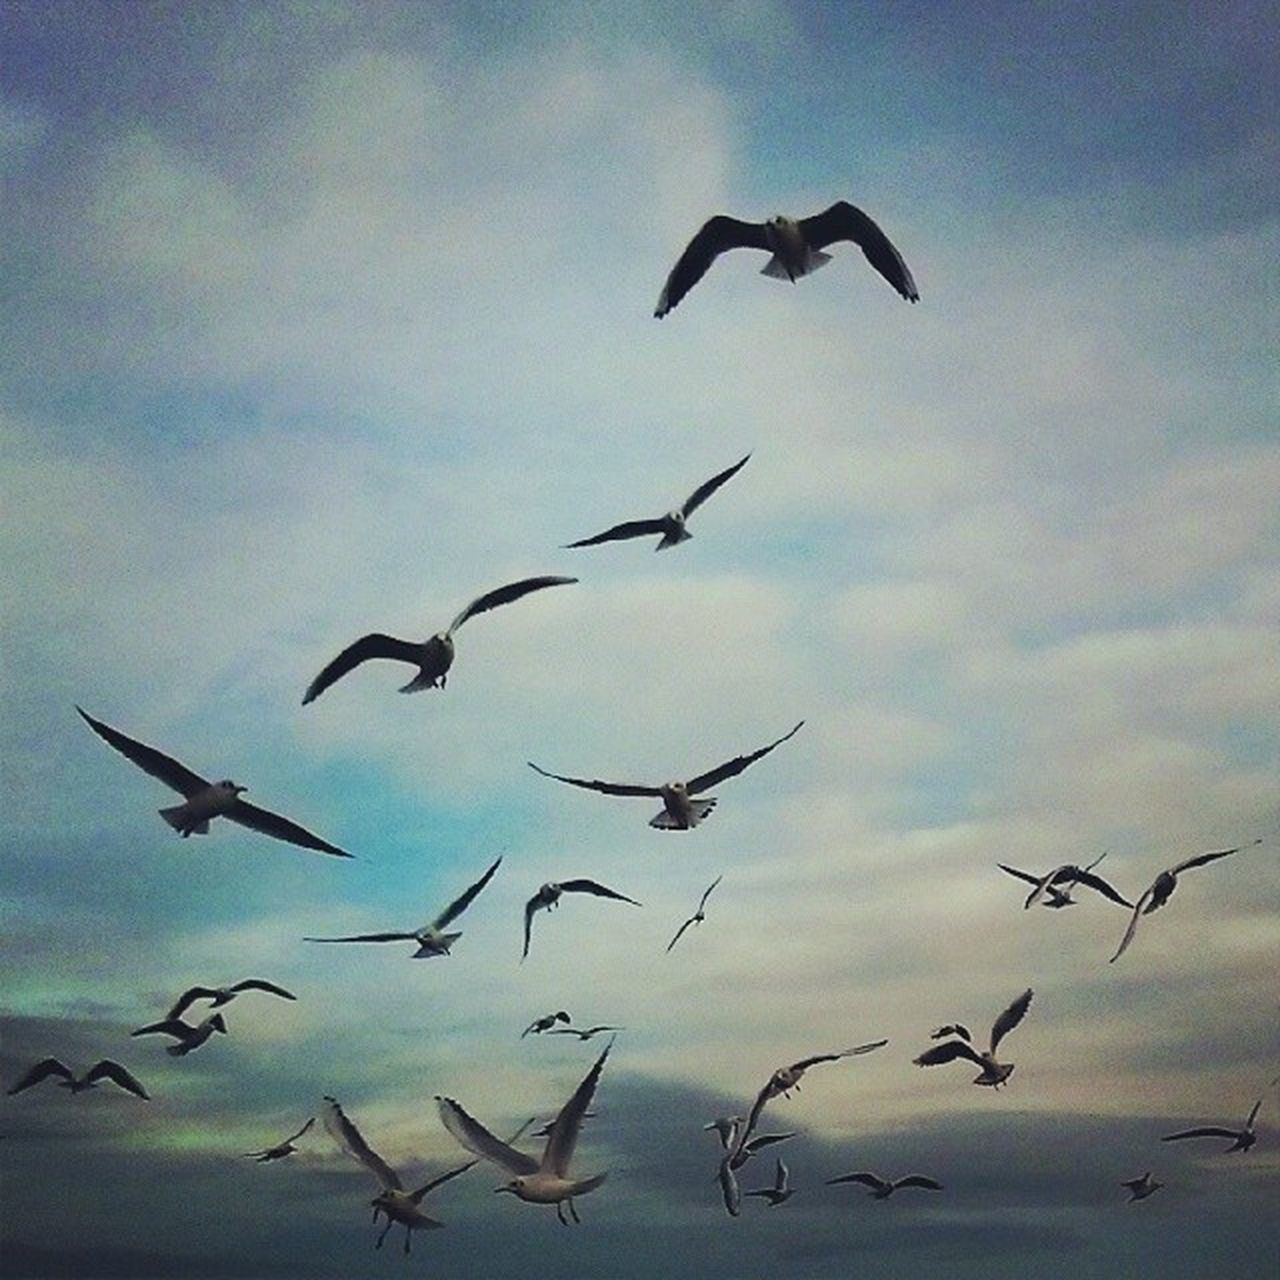 flying, bird, animals in the wild, animal themes, spread wings, mid-air, animal wildlife, flock of birds, wildlife, nature, migrating, large group of animals, low angle view, no people, day, sky, outdoors, togetherness, beauty in nature, seagull